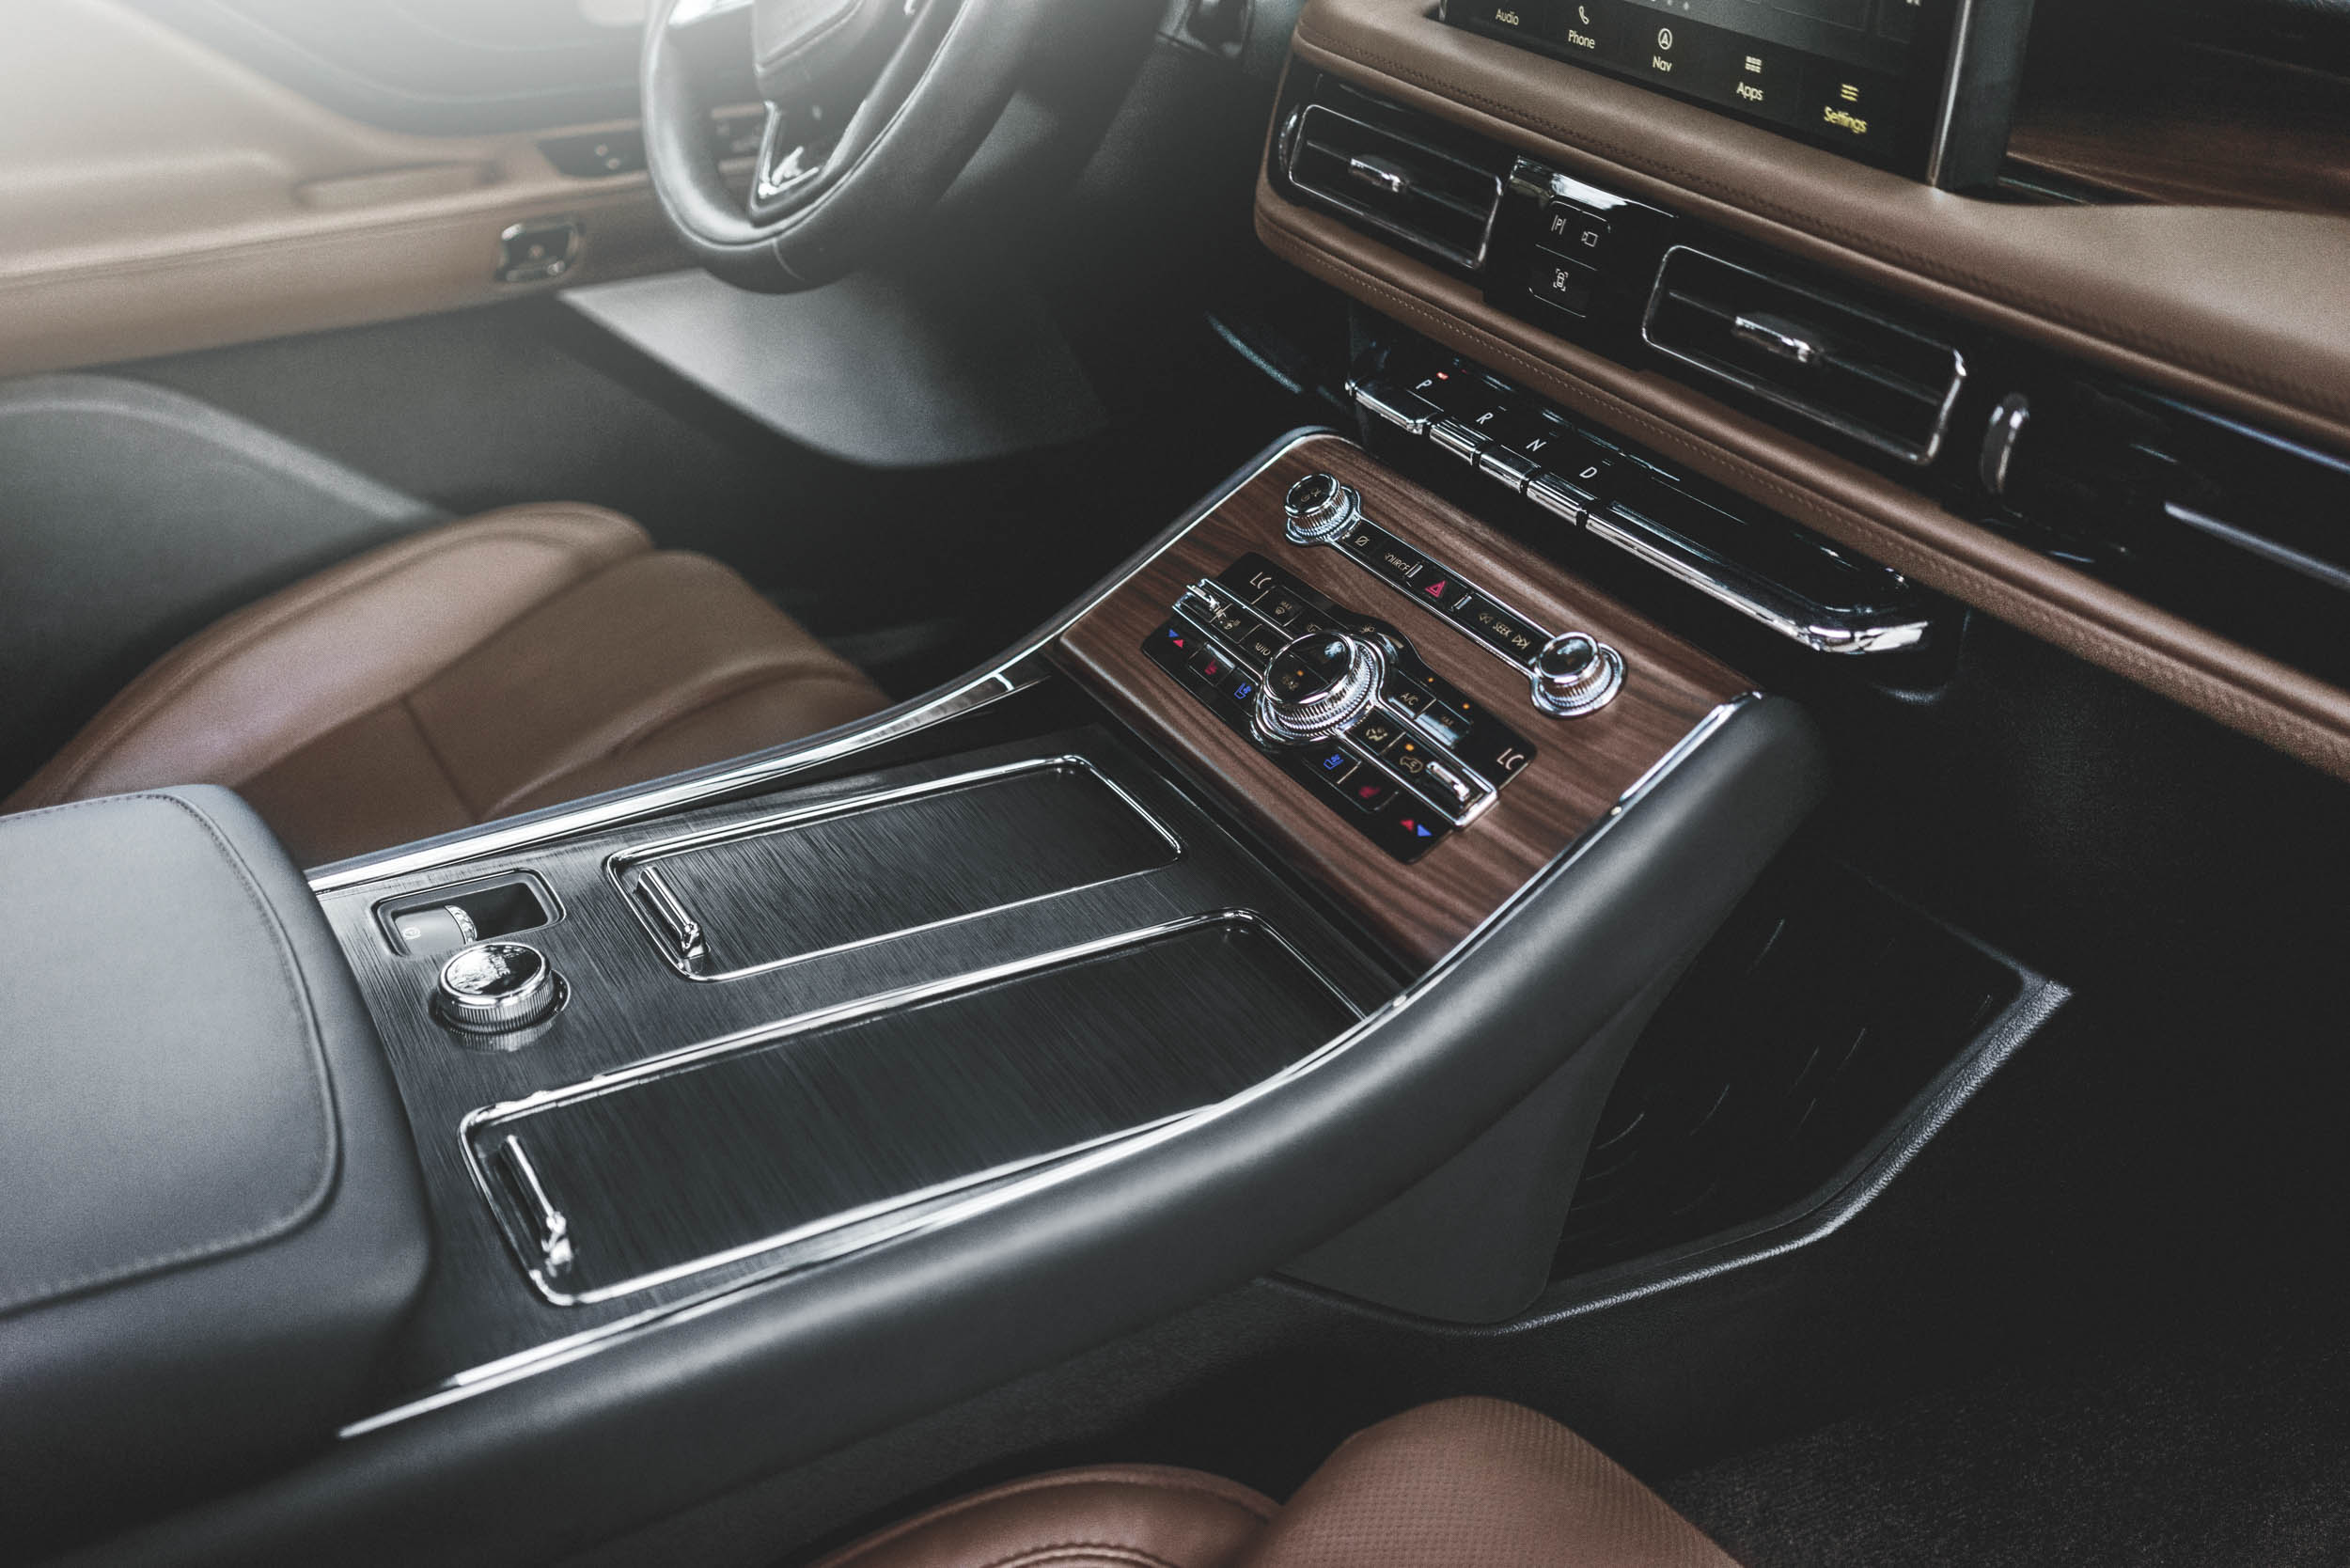 2020 Lincoln Aviator interior details